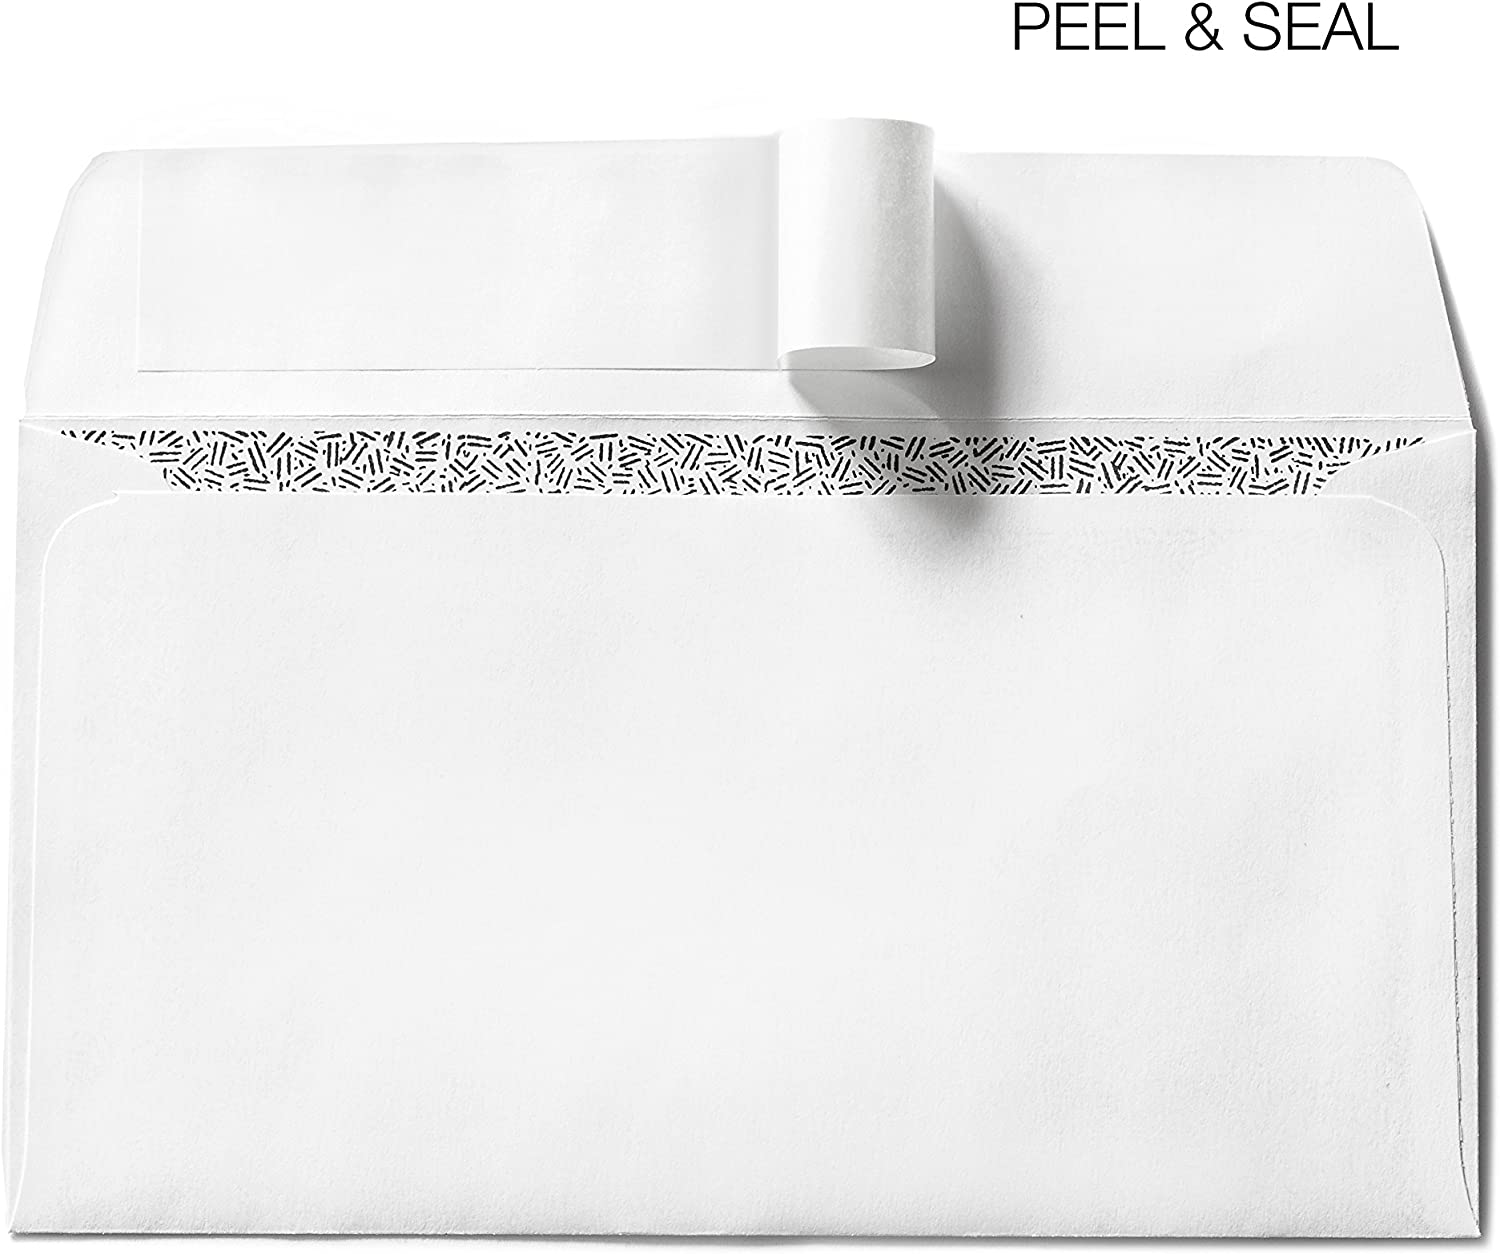 #6 3/4 Security Envelopes White Peel Seal – Bulk Self-Seal Windowless Envelope Pack in 6 1/2 x 3 5/8 Office Size – Tinted Privacy for Business or Personal Mailing – 500 Count Box